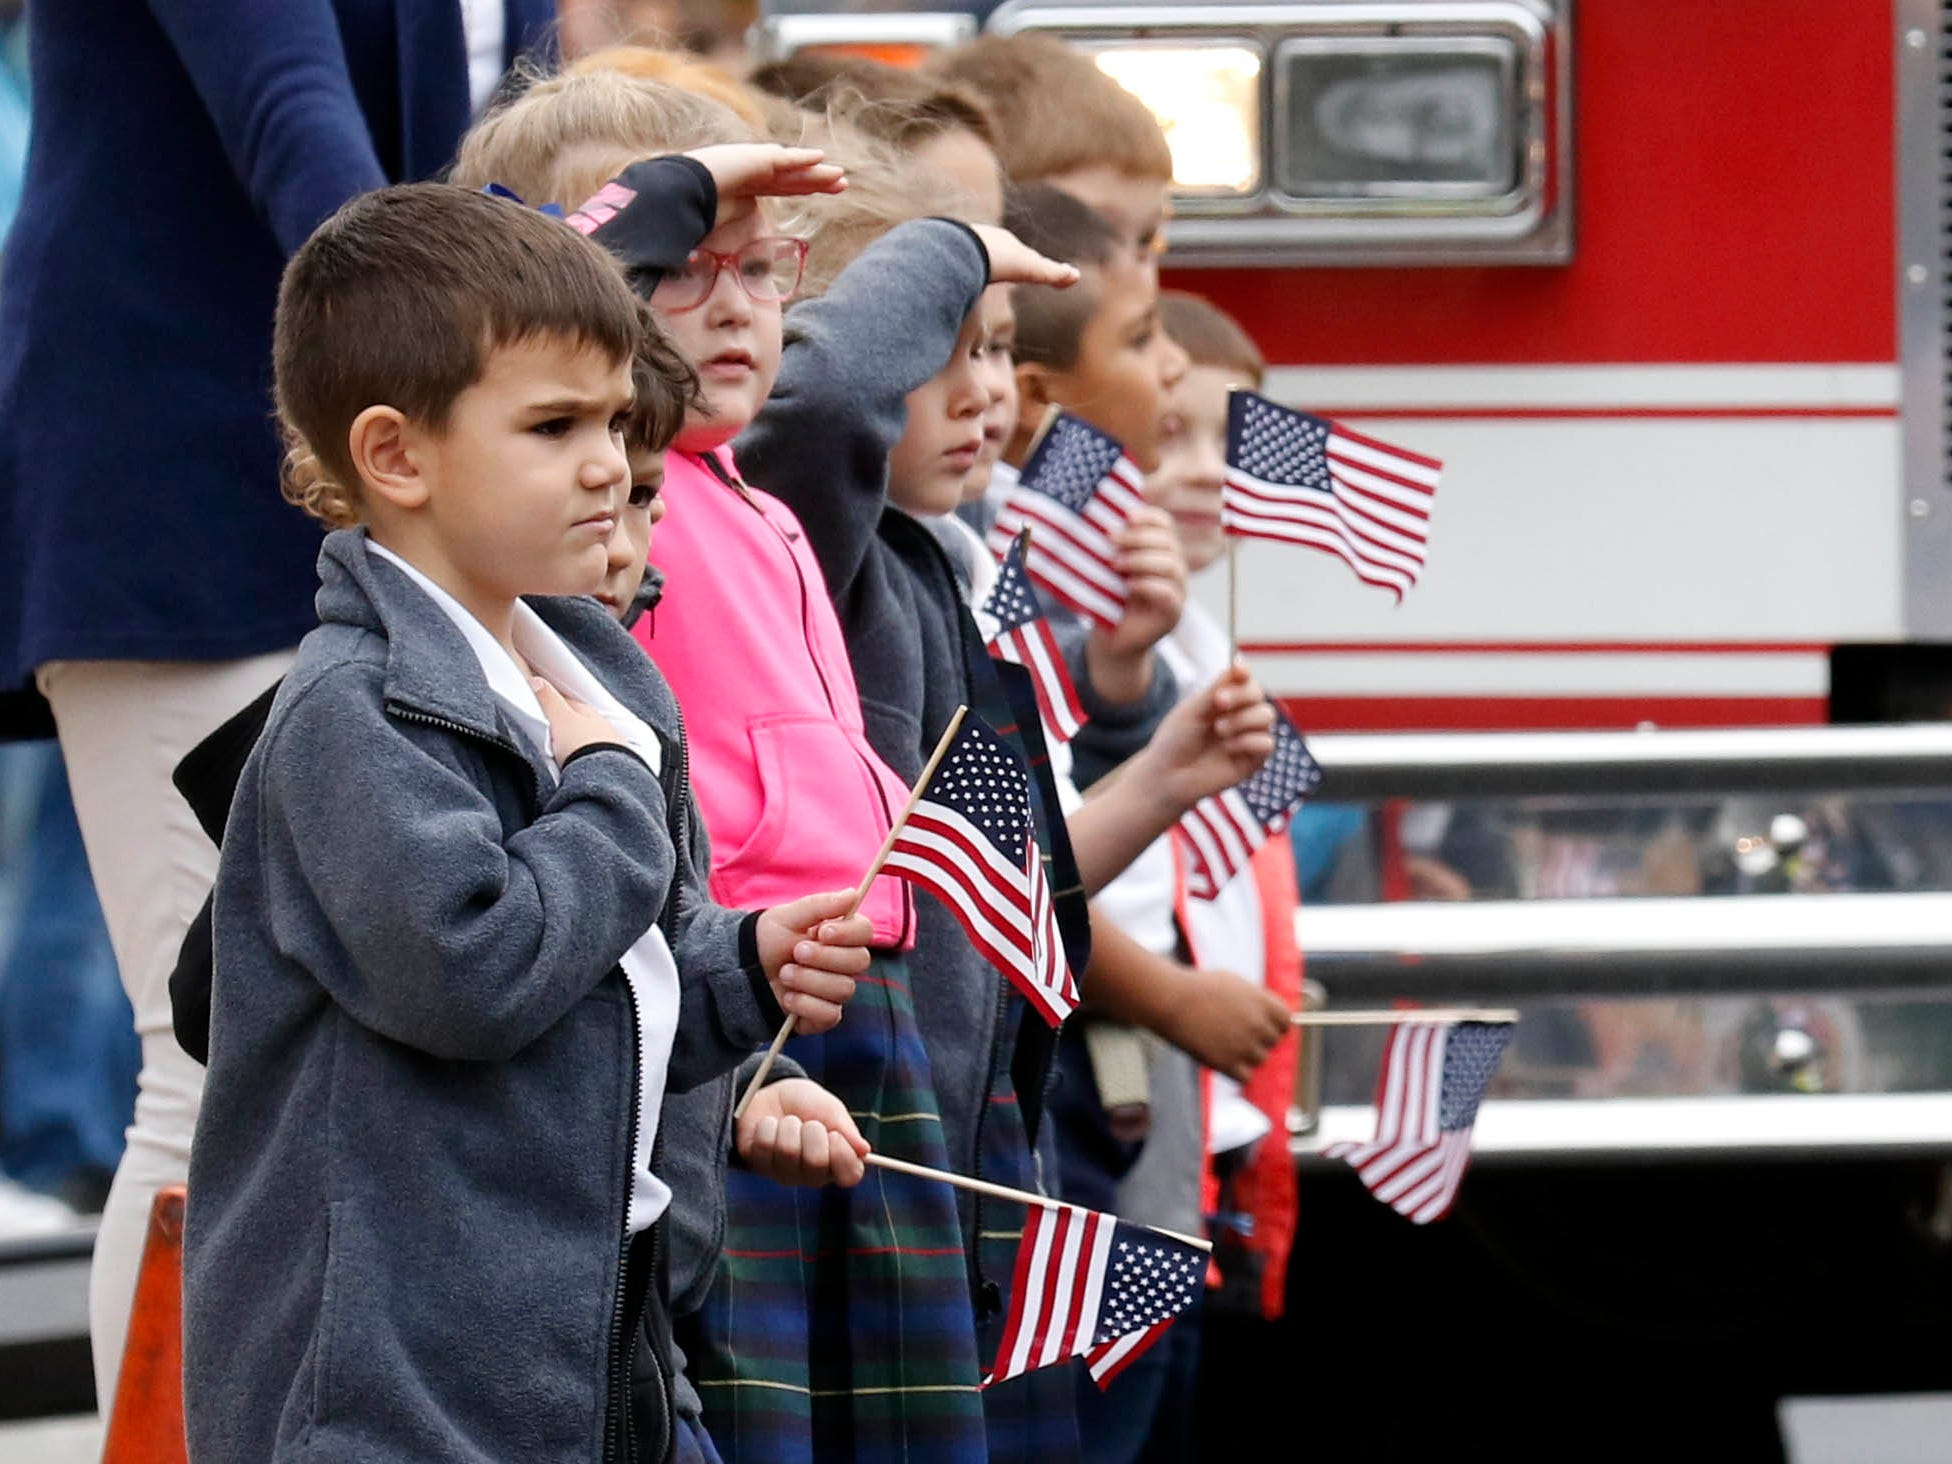 Camden O'Rielley, Evie Gabbard and the rest of their kindergarten class stand outside St. Mary School Friday, Oct. 5, 2018, as they watch the funeral procession for Lancaster Police Lt. Brian Lowe pass the school. All of the schools students in pre-kindergarten through eighth grade stood outside to honor Lowe who died unexpectedly September 29 while off duty.